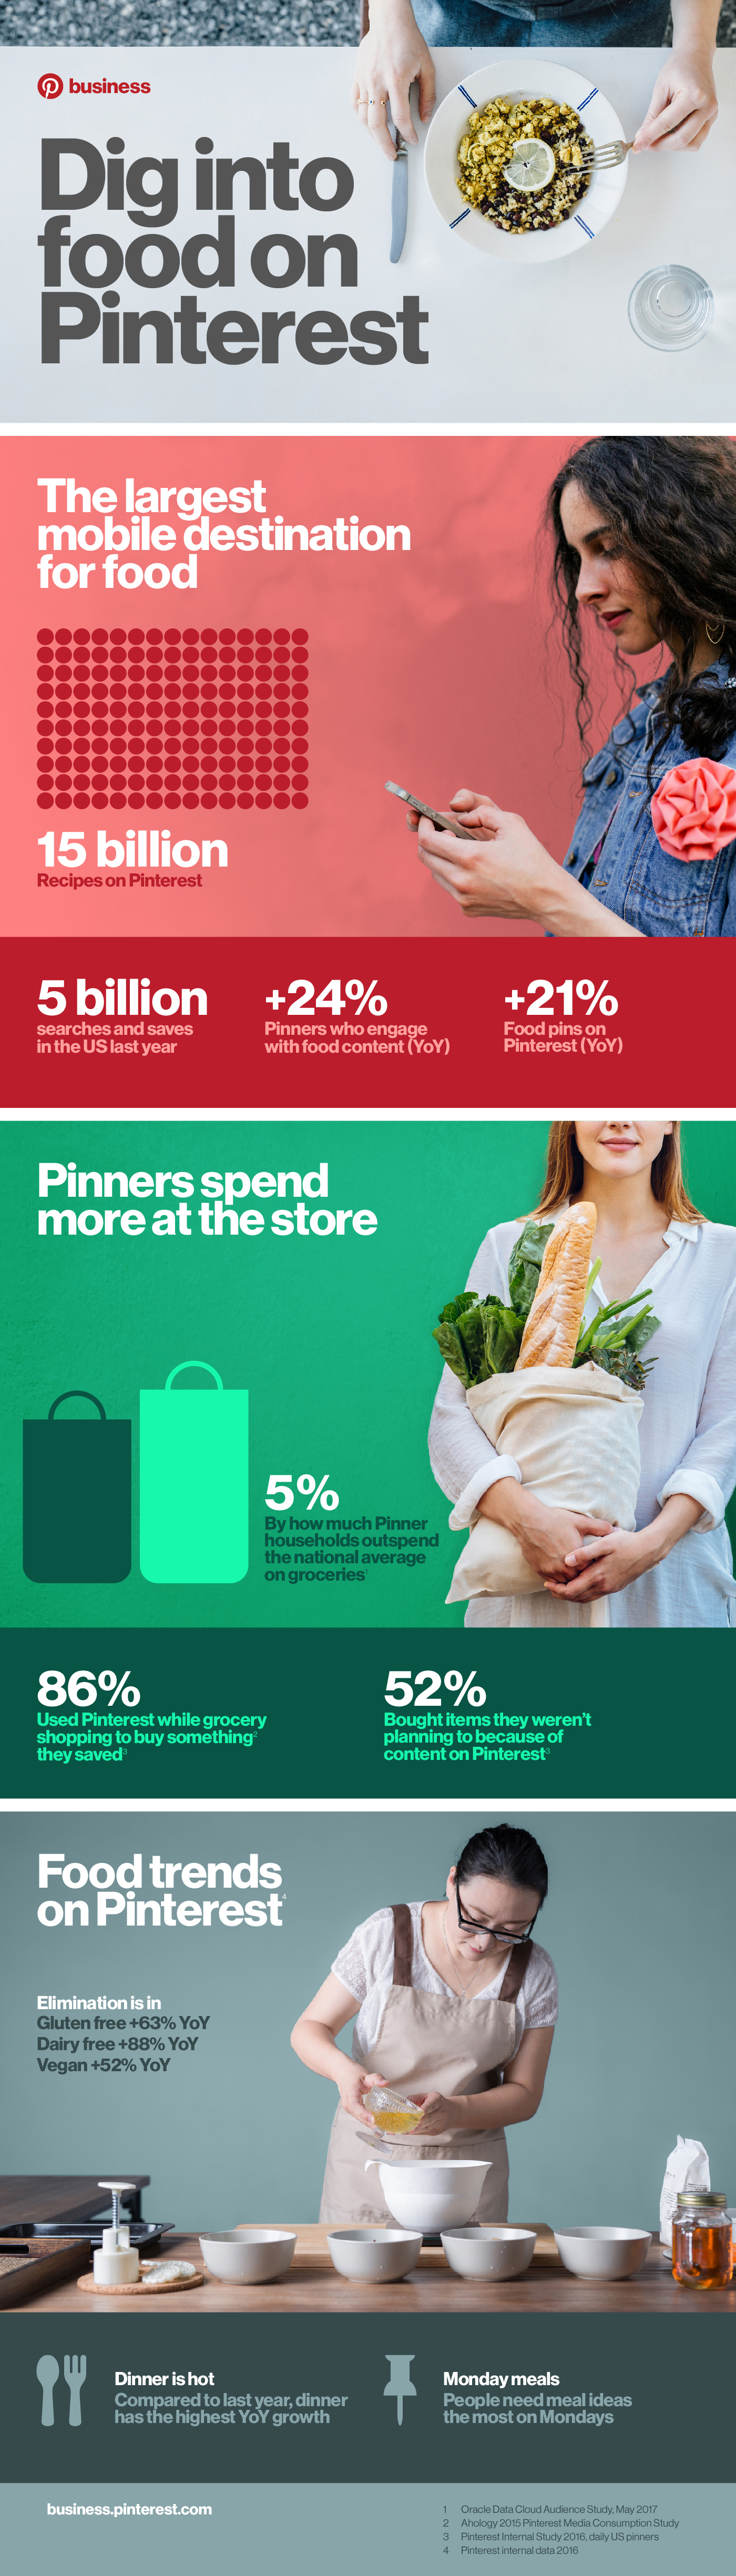 The Growth of Food-Related Content on Pinterest [Infographic] | Social Media Today